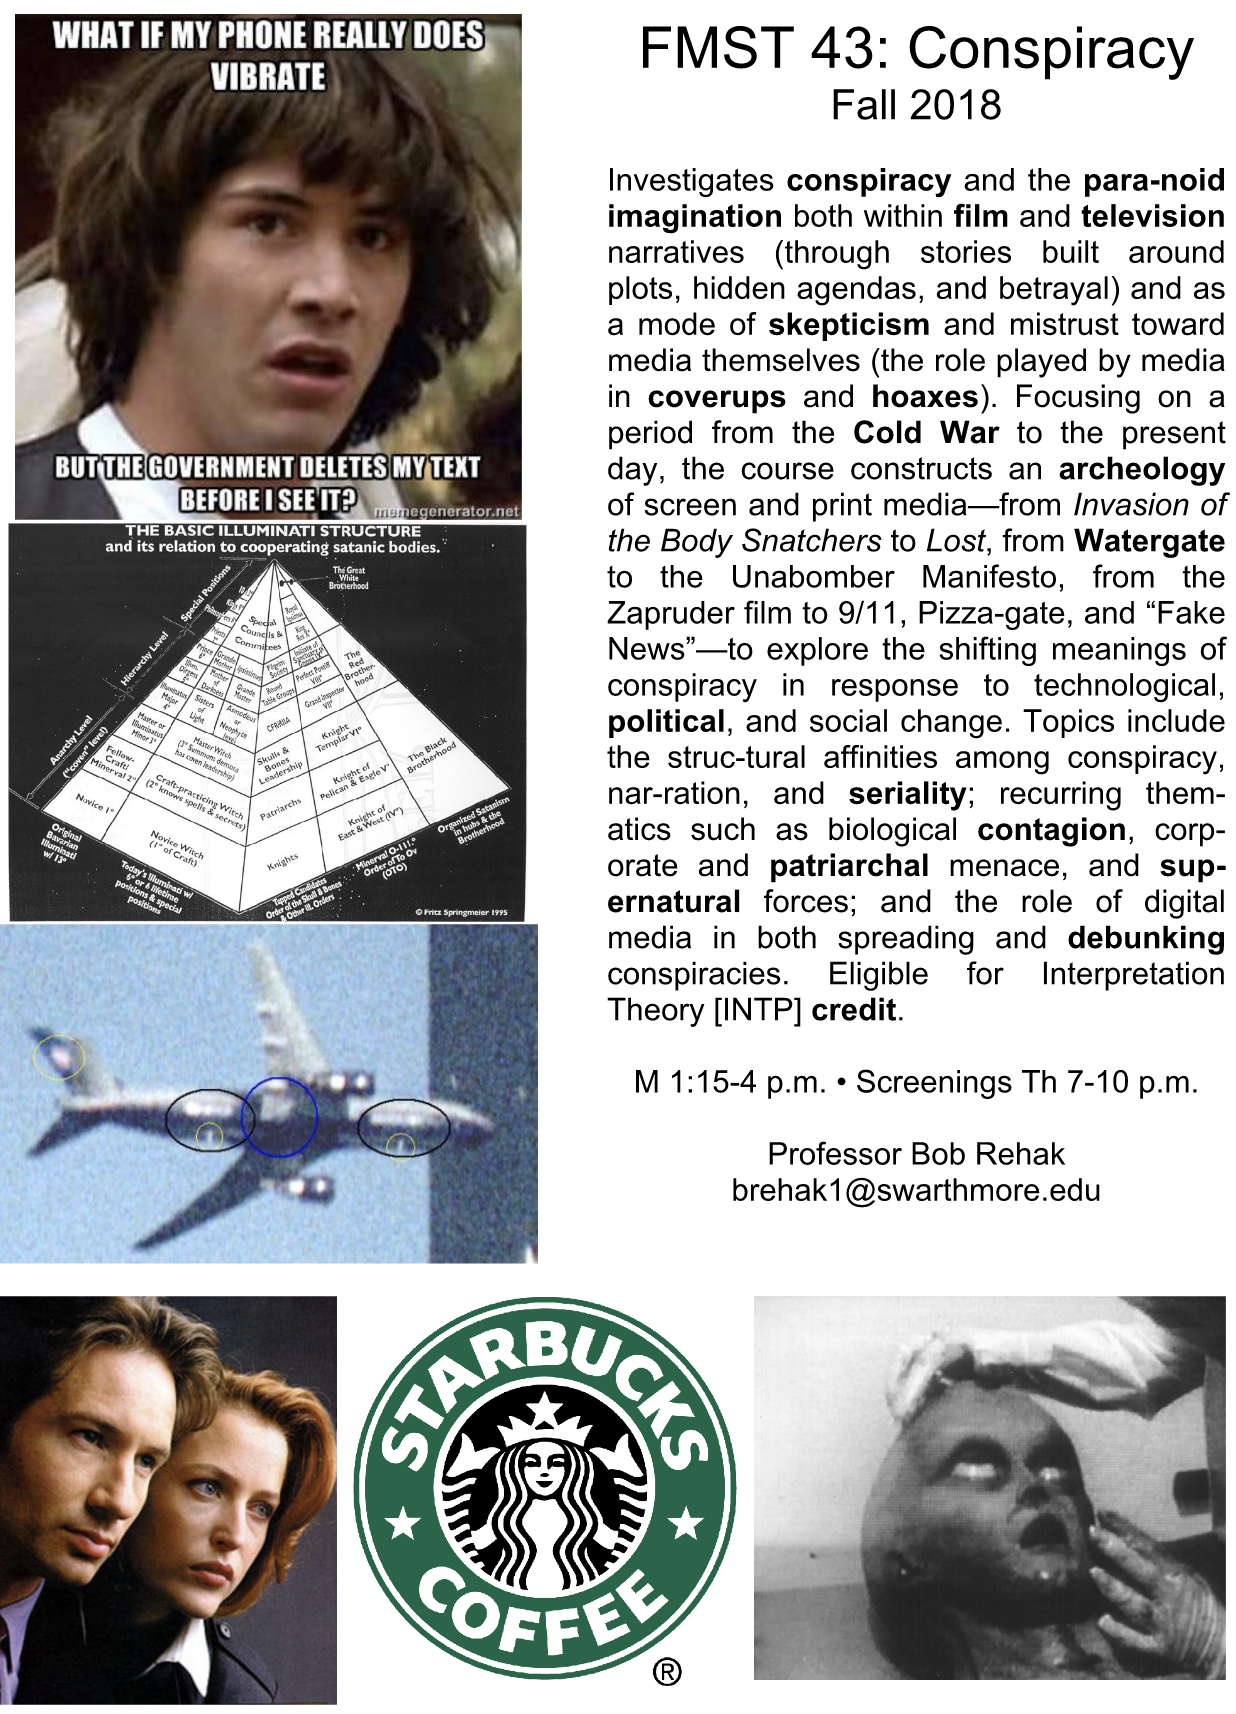 poster for conspiracy media course. details course info as provided in the text below. includes photos of an airplane, a starbucks logo, an alien, and mulder and scully. mentions that the course is eligible for INPT credit.